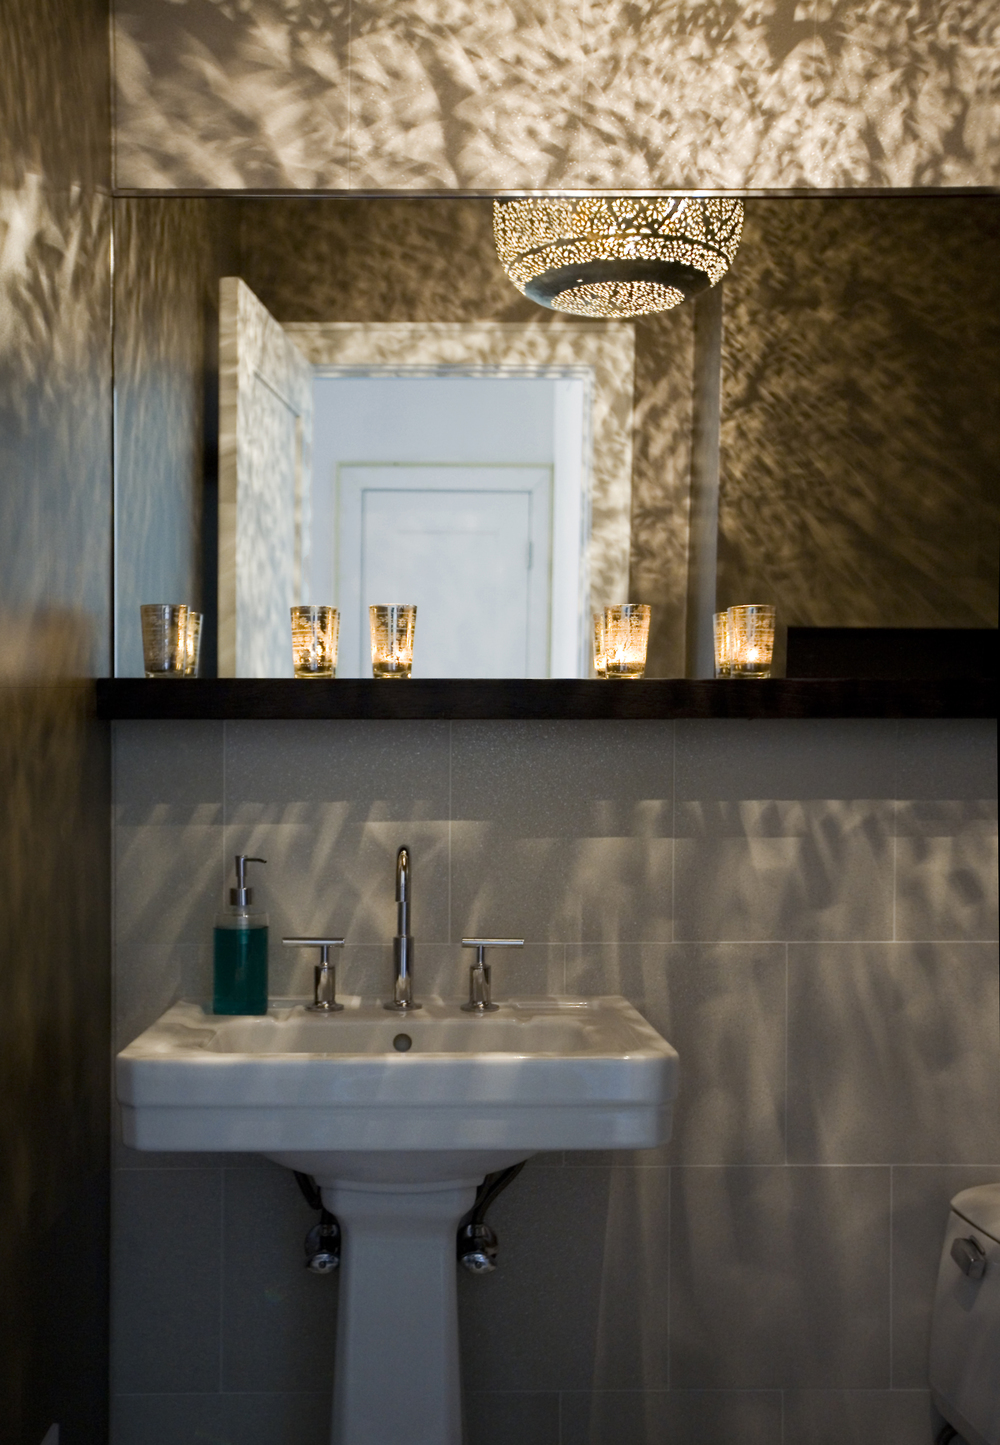 wildwood powder room | awh photography